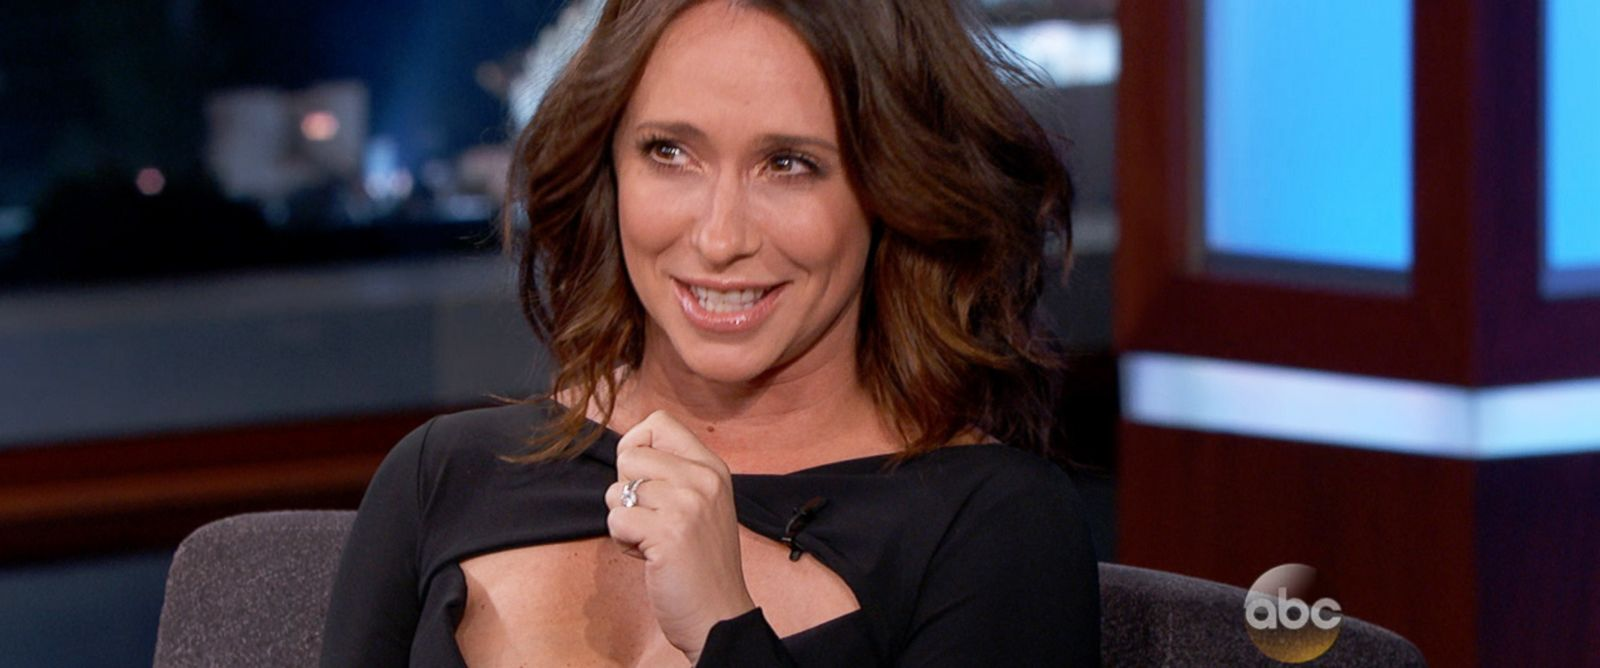 jennifer love hewitt leatherjennifer love hewitt 2016, jennifer love hewitt 2017, jennifer love hewitt wiki, jennifer love hewitt movies, jennifer love hewitt instagram, jennifer love hewitt young, jennifer love hewitt фильмы, jennifer love hewitt imdb, jennifer love hewitt фильмография, jennifer love hewitt songs, jennifer love hewitt fan site, jennifer love hewitt kinopoisk, jennifer love hewitt кинопоиск, jennifer love hewitt style, jennifer love hewitt husband, jennifer love hewitt jackie chan, jennifer love hewitt - i'm a woman, jennifer love hewitt leather, jennifer love hewitt and enrique iglesias, jennifer love hewitt 2015